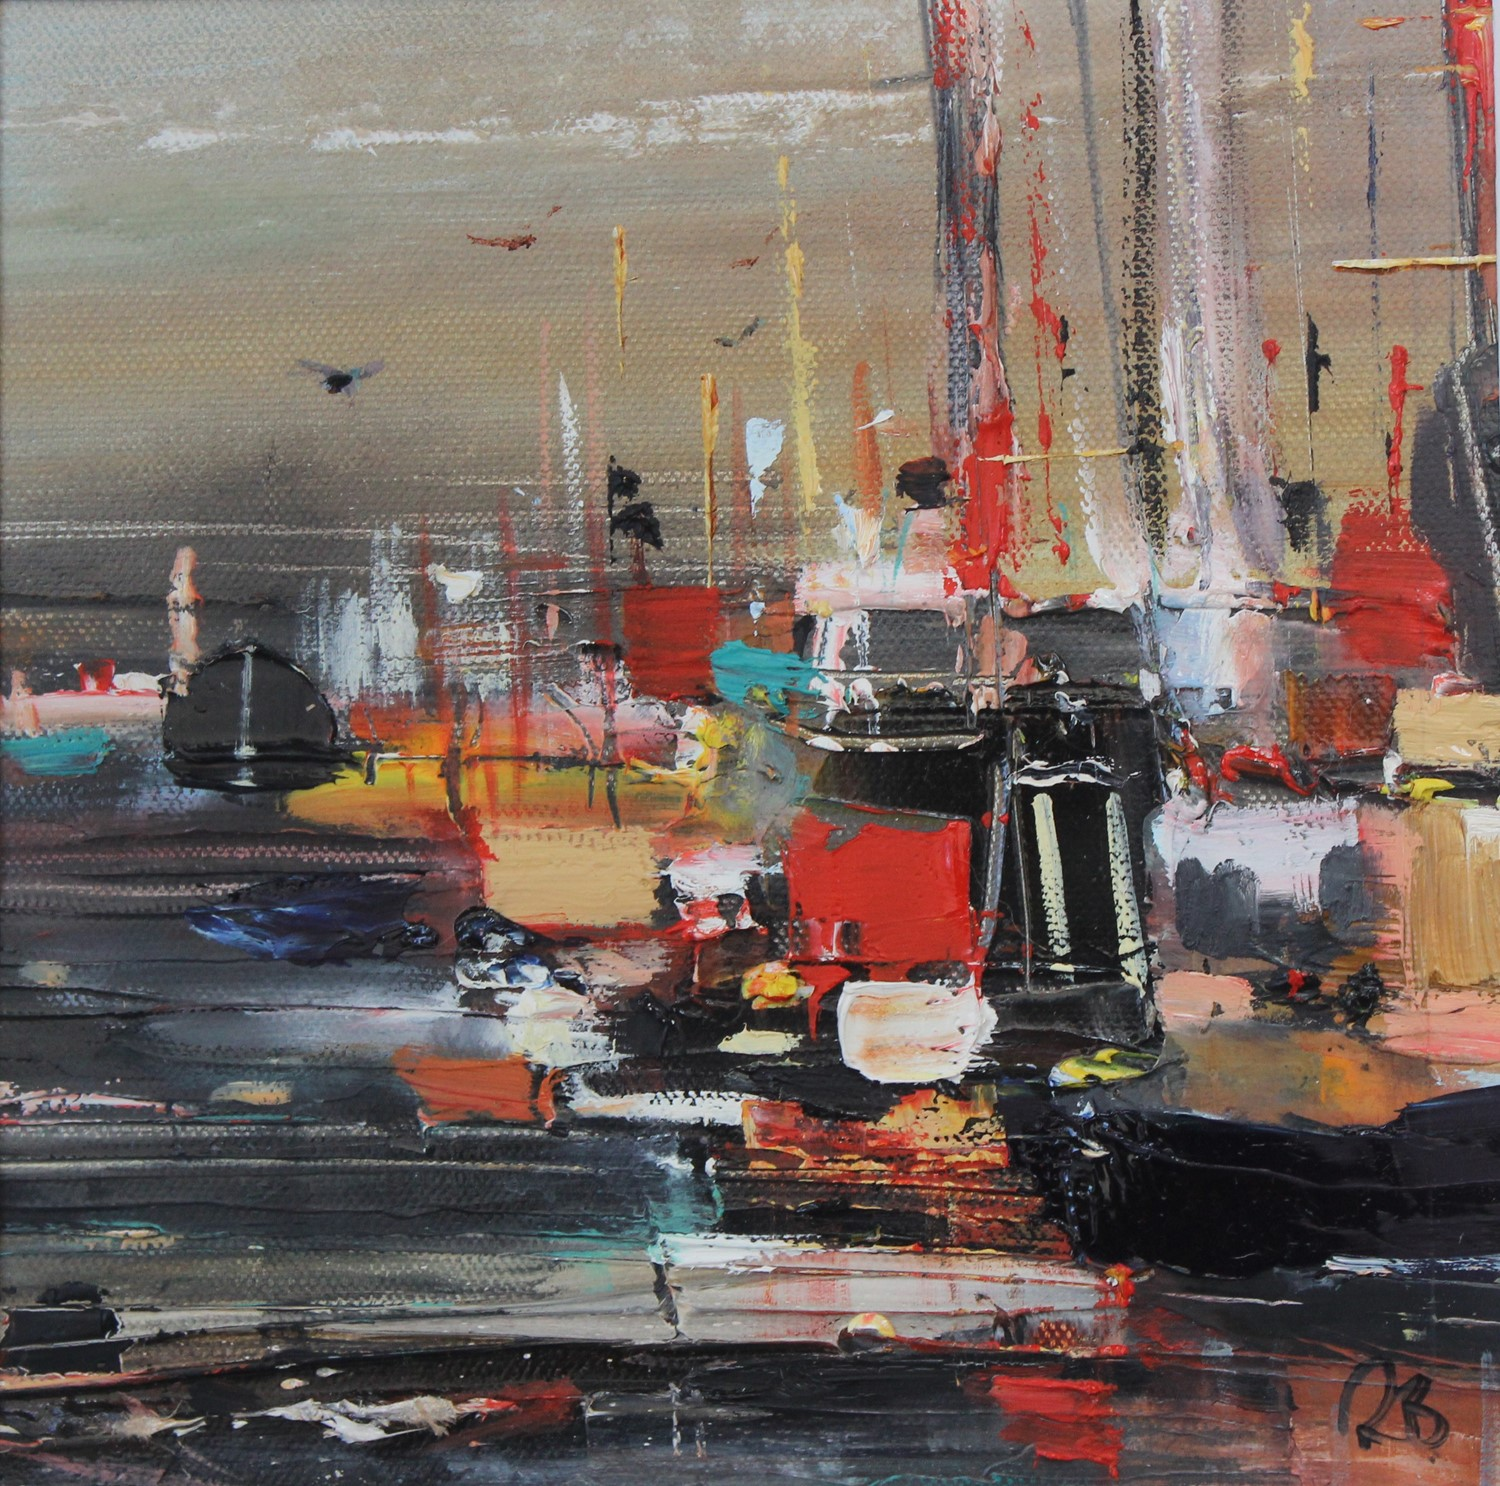 'A Busy Little Harbour' by artist Rosanne Barr